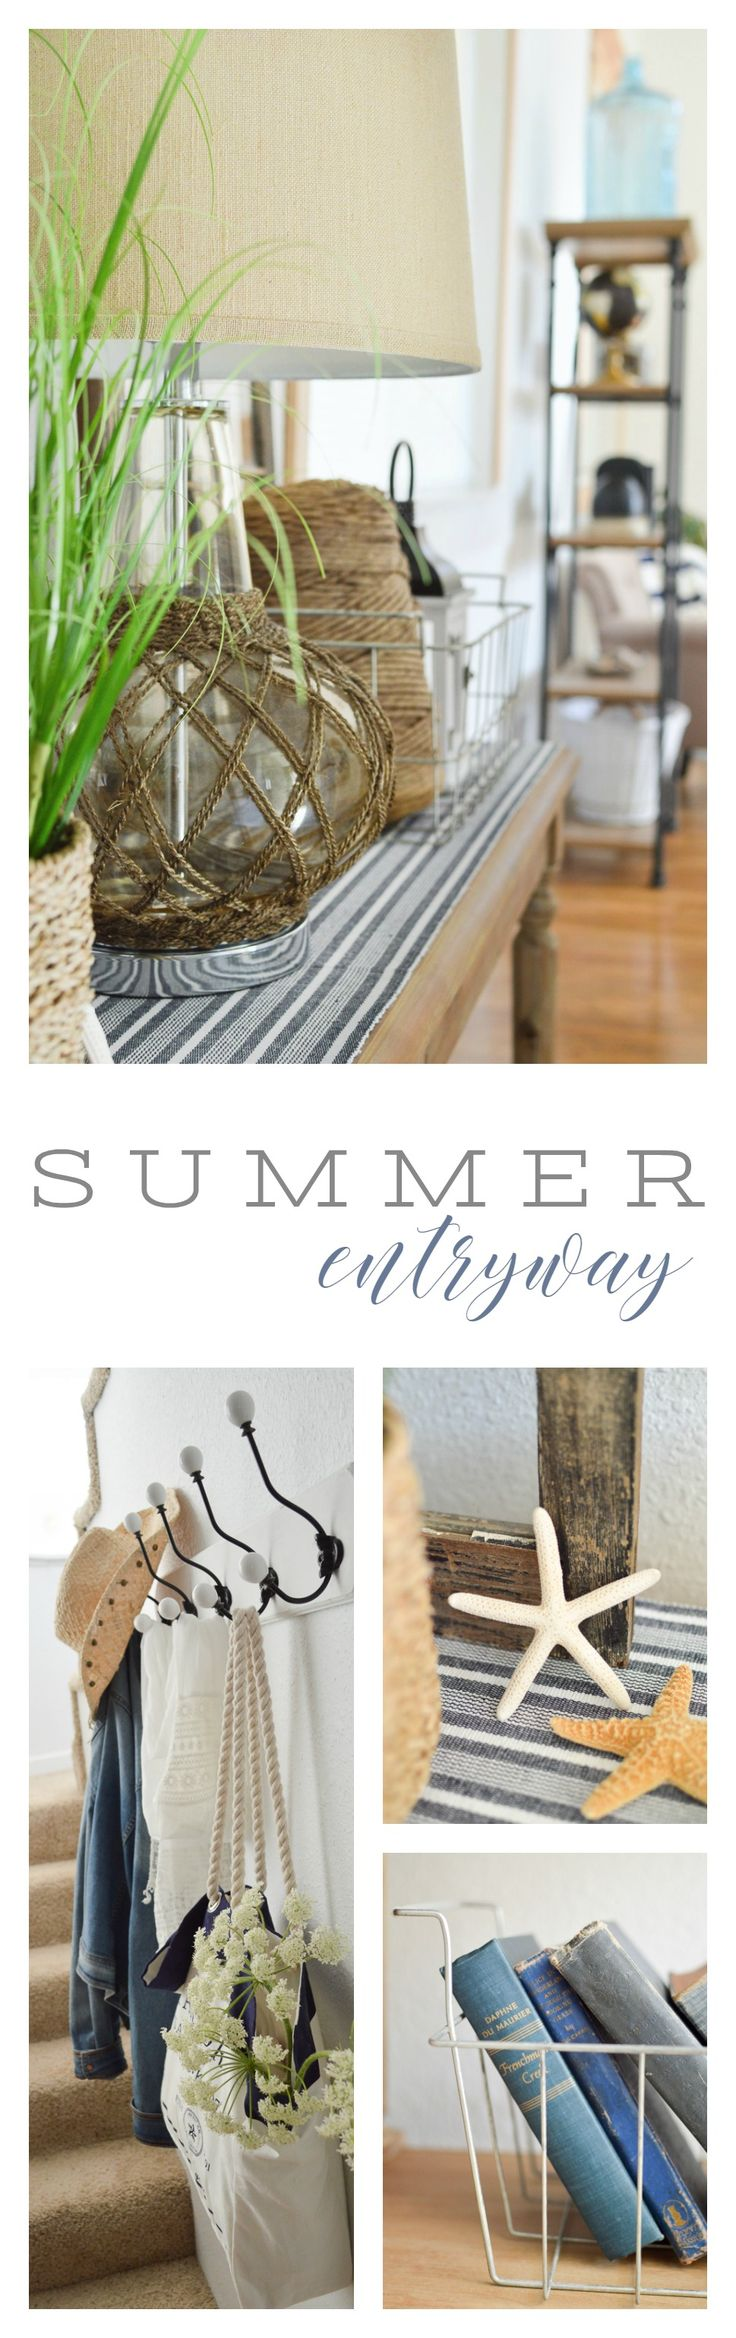 Summer Entryway Home Decorating Ideas. Our entry is full of affordable HomeGoods touches, like the navy grain sack style table runner and matching black and white lanterns (they even have a timer function!). This relaxed, coastal cottage style with nautical accents and vintage thrifted finds blends easily with my new decor purchases for a well rounded space. Entry tour with sources and ideas at The Little Cottage | foxhollowcottage.com